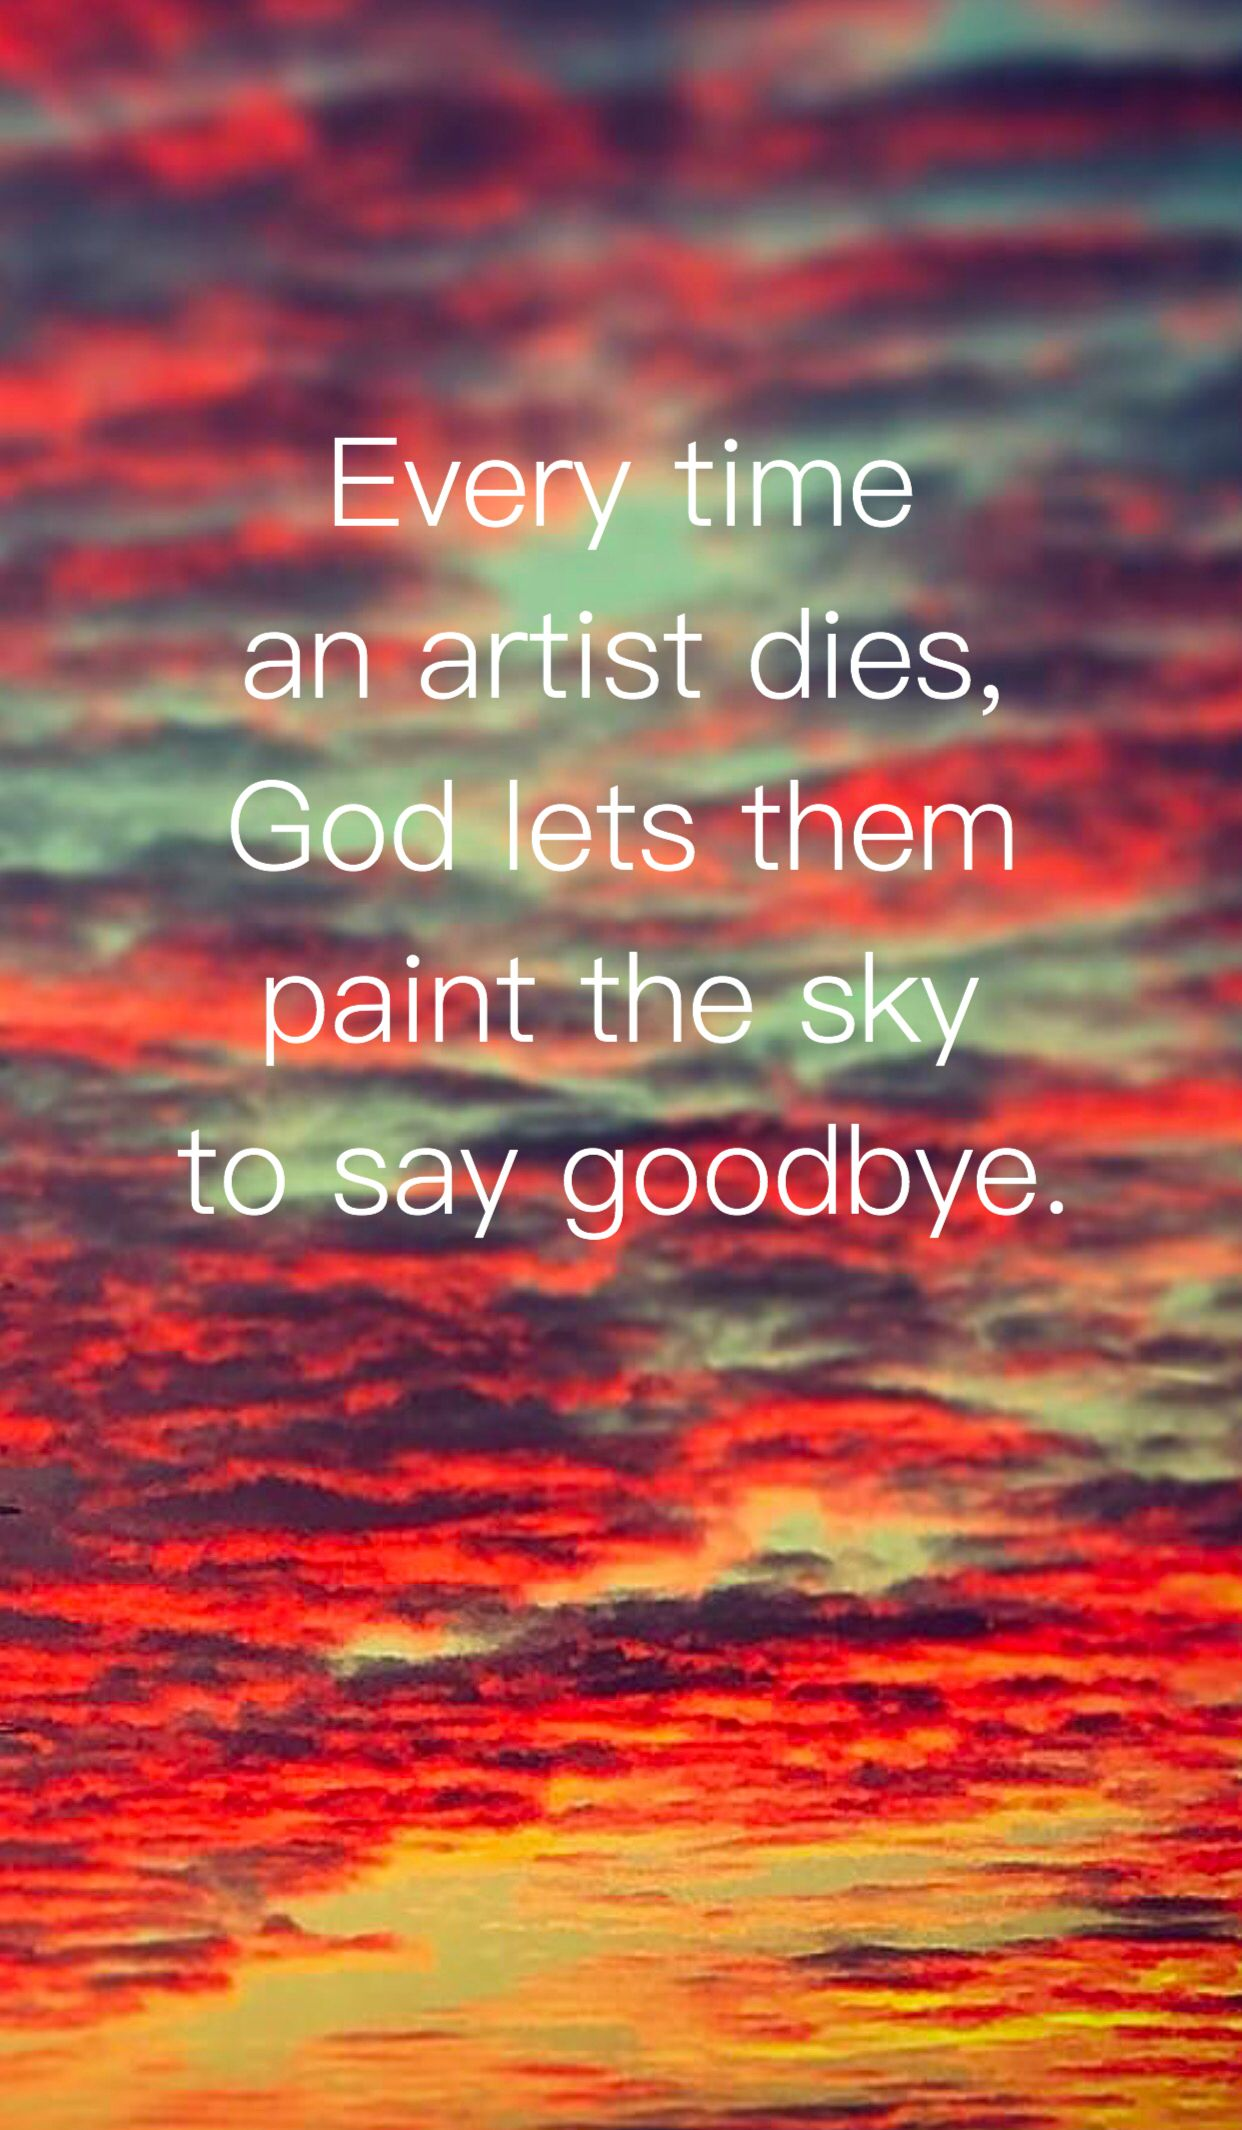 Every Time An Artist Dies God Lets Them Paint The Sky To Say